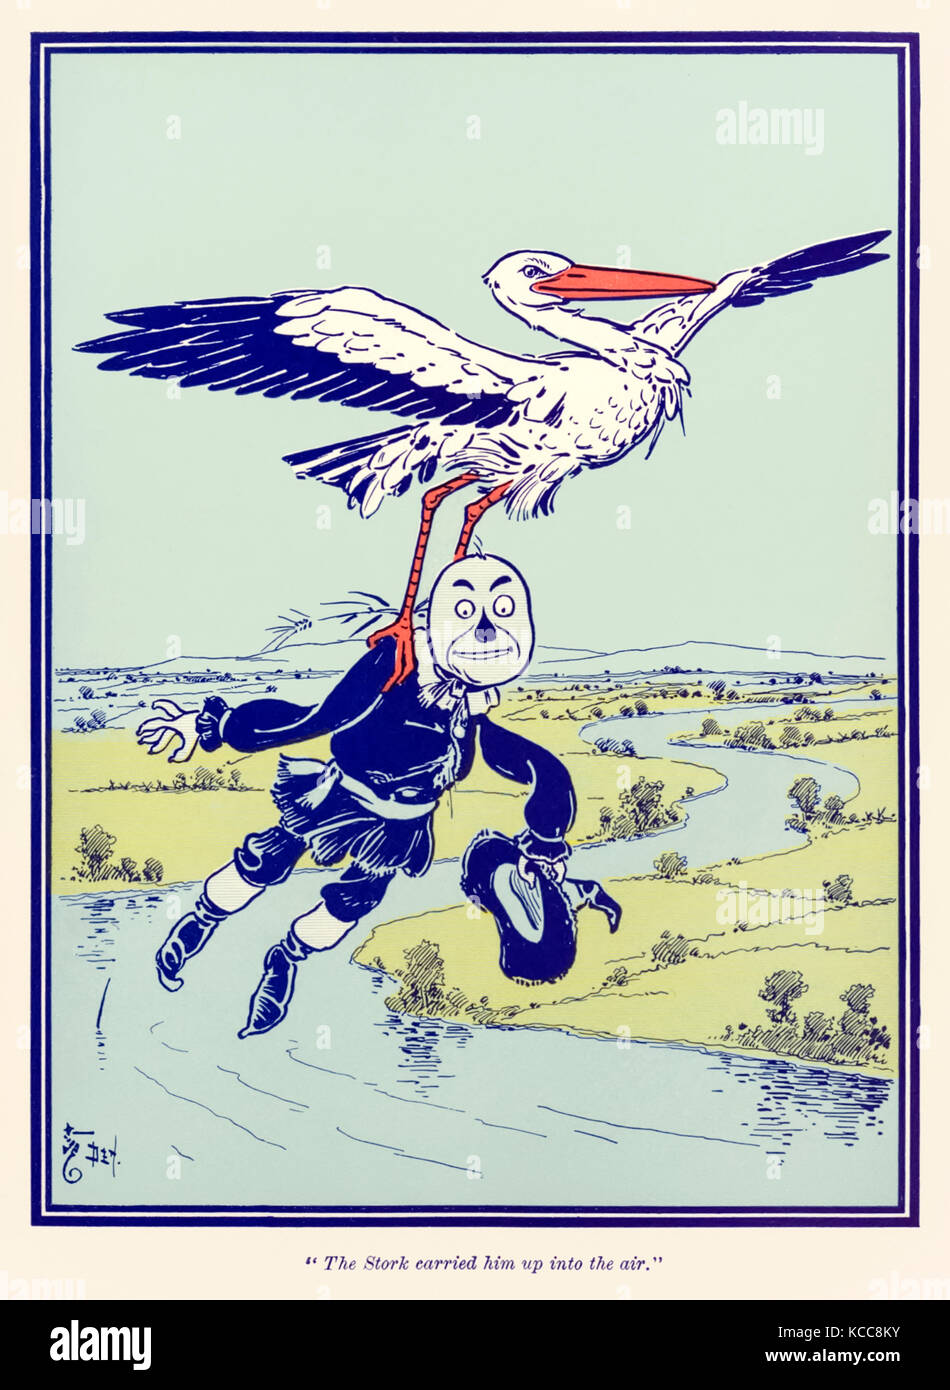 """The Stork carried him up into the air."" from 'The Wonderful Wizard of Oz' by L. Frank Baum (1856-1919) with pictures - Stock Image"